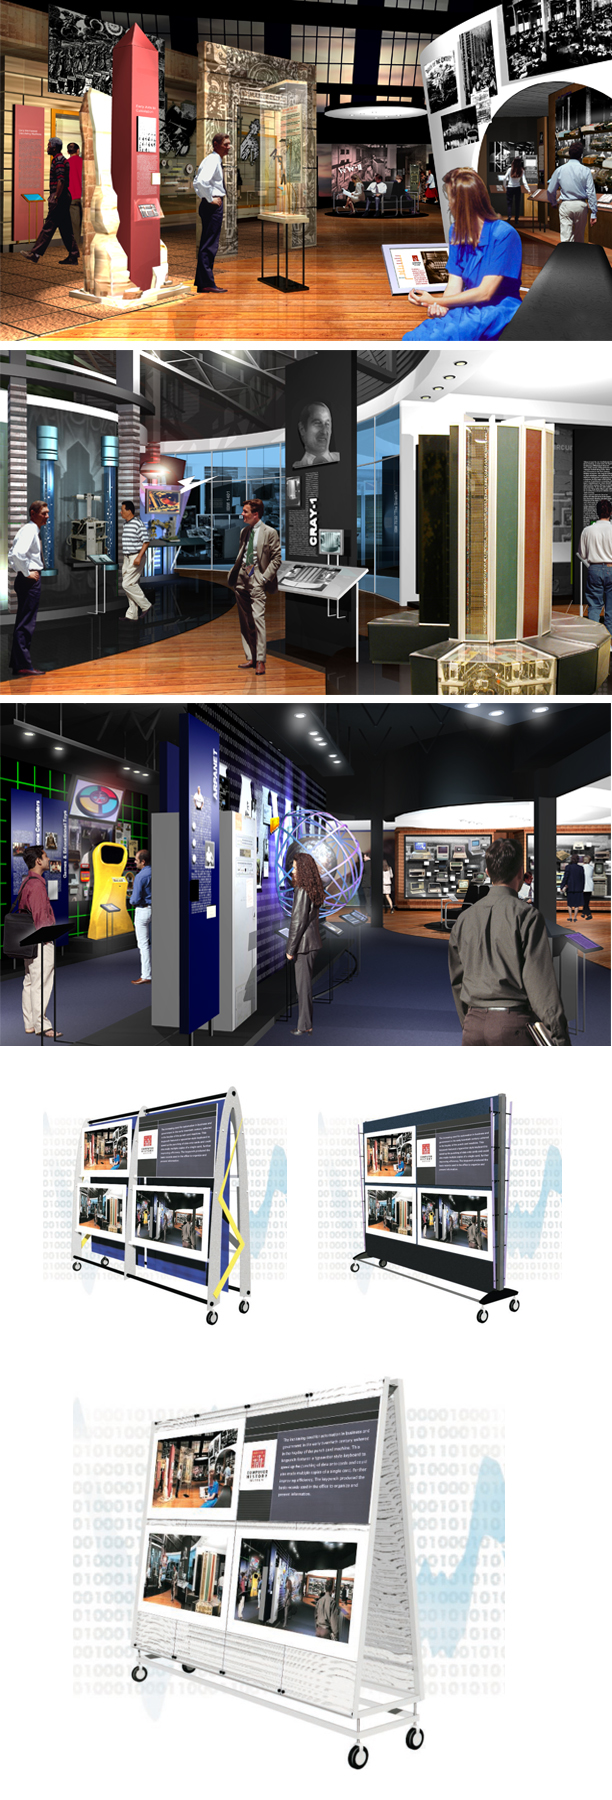 Early 2002 fundraising renderings for the permanent collection exhibit and concept renderings for rolling display carts used to display and transport large foam-core mounted prints of the renderings.  The larger cart image was built.